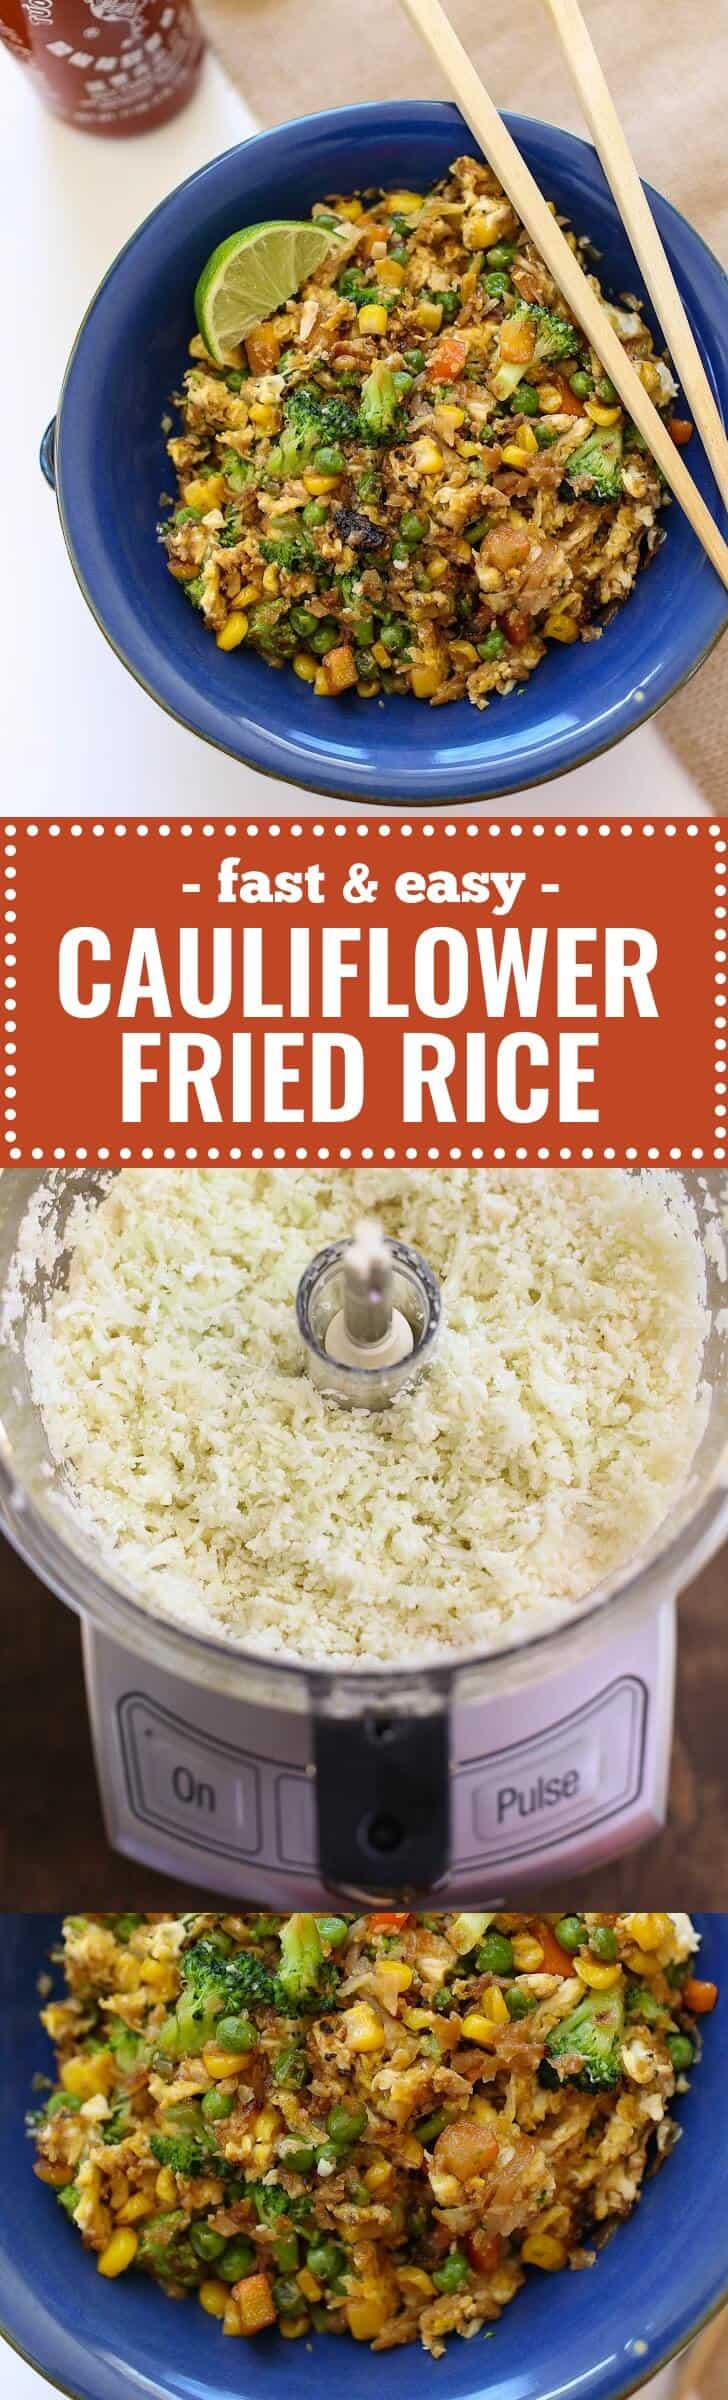 """Cauliflower Fried Rice - Fried """"Rice"""" made with cauliflower rice is low carb, paleo and gluten free. Best of all, cauliflower rice has a great, light texture and absorbs all the flavors of the addictive sauce it's tossed in. Customize this easy weeknight recipe using any vegetables you have in the fridge. Paleo, Gluten-Free, Vegetarian, Healthy and Tasty"""